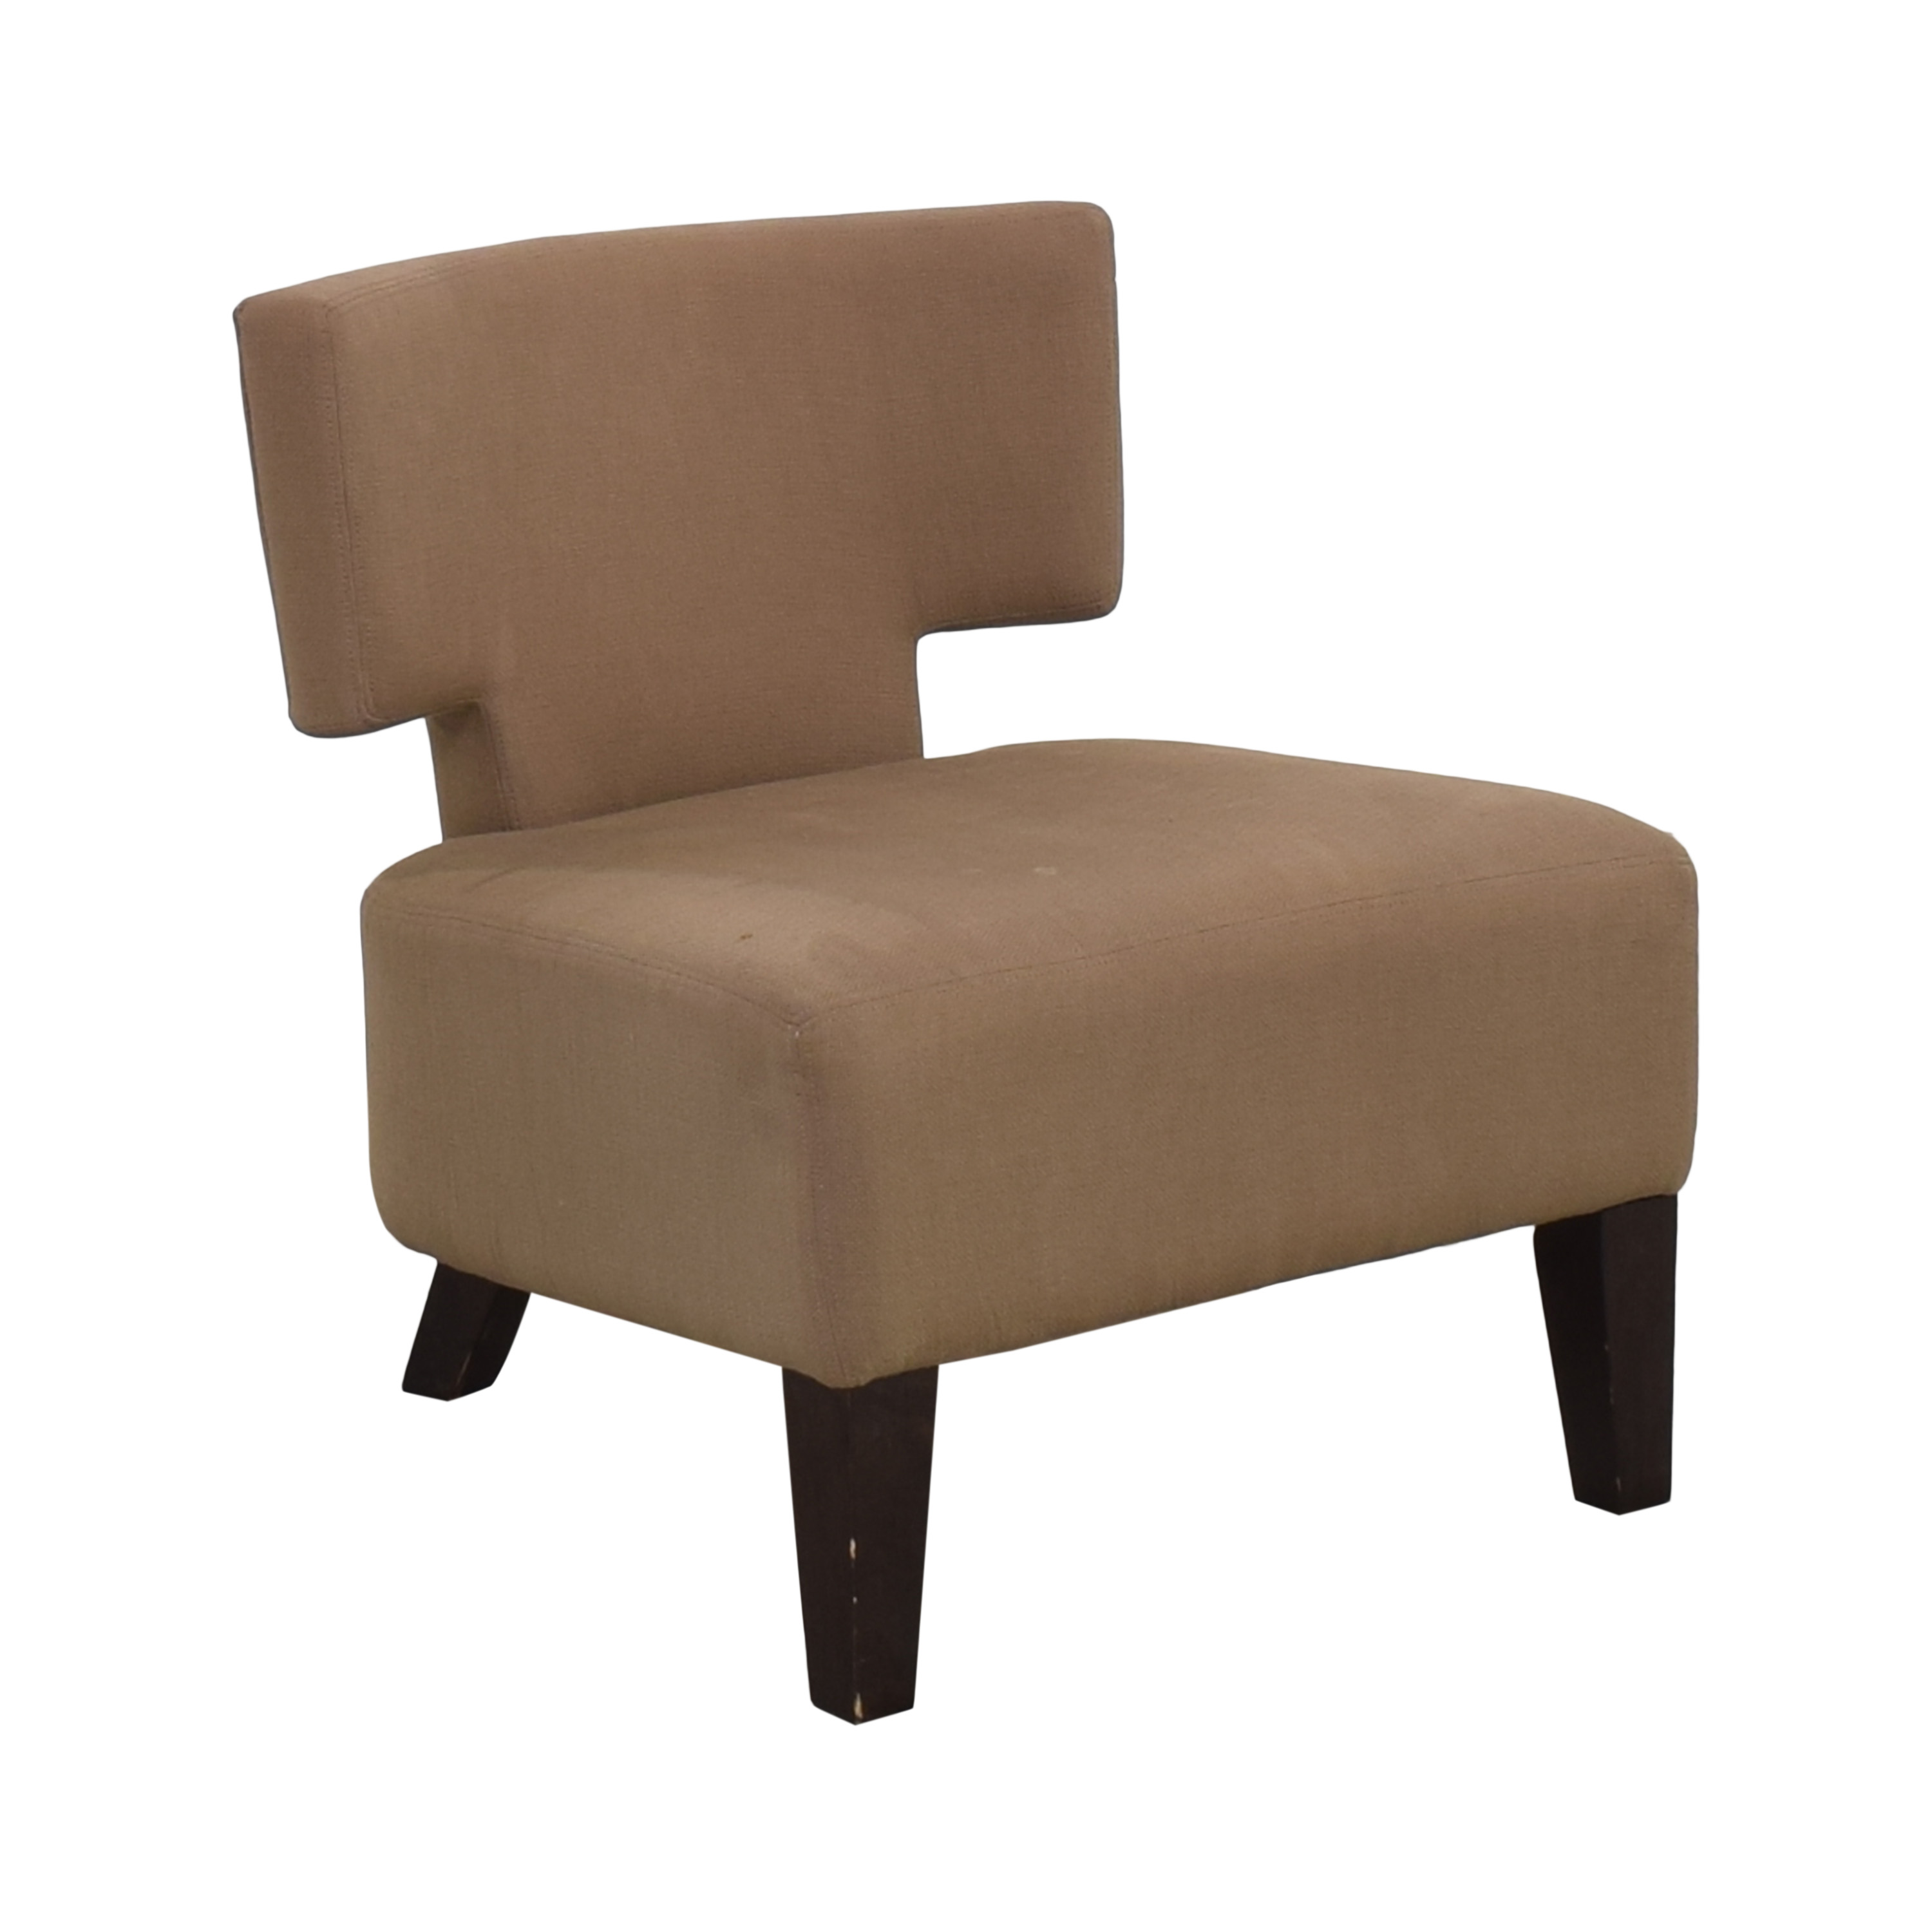 West Elm West Elm Geometric Lounge Chair Chairs